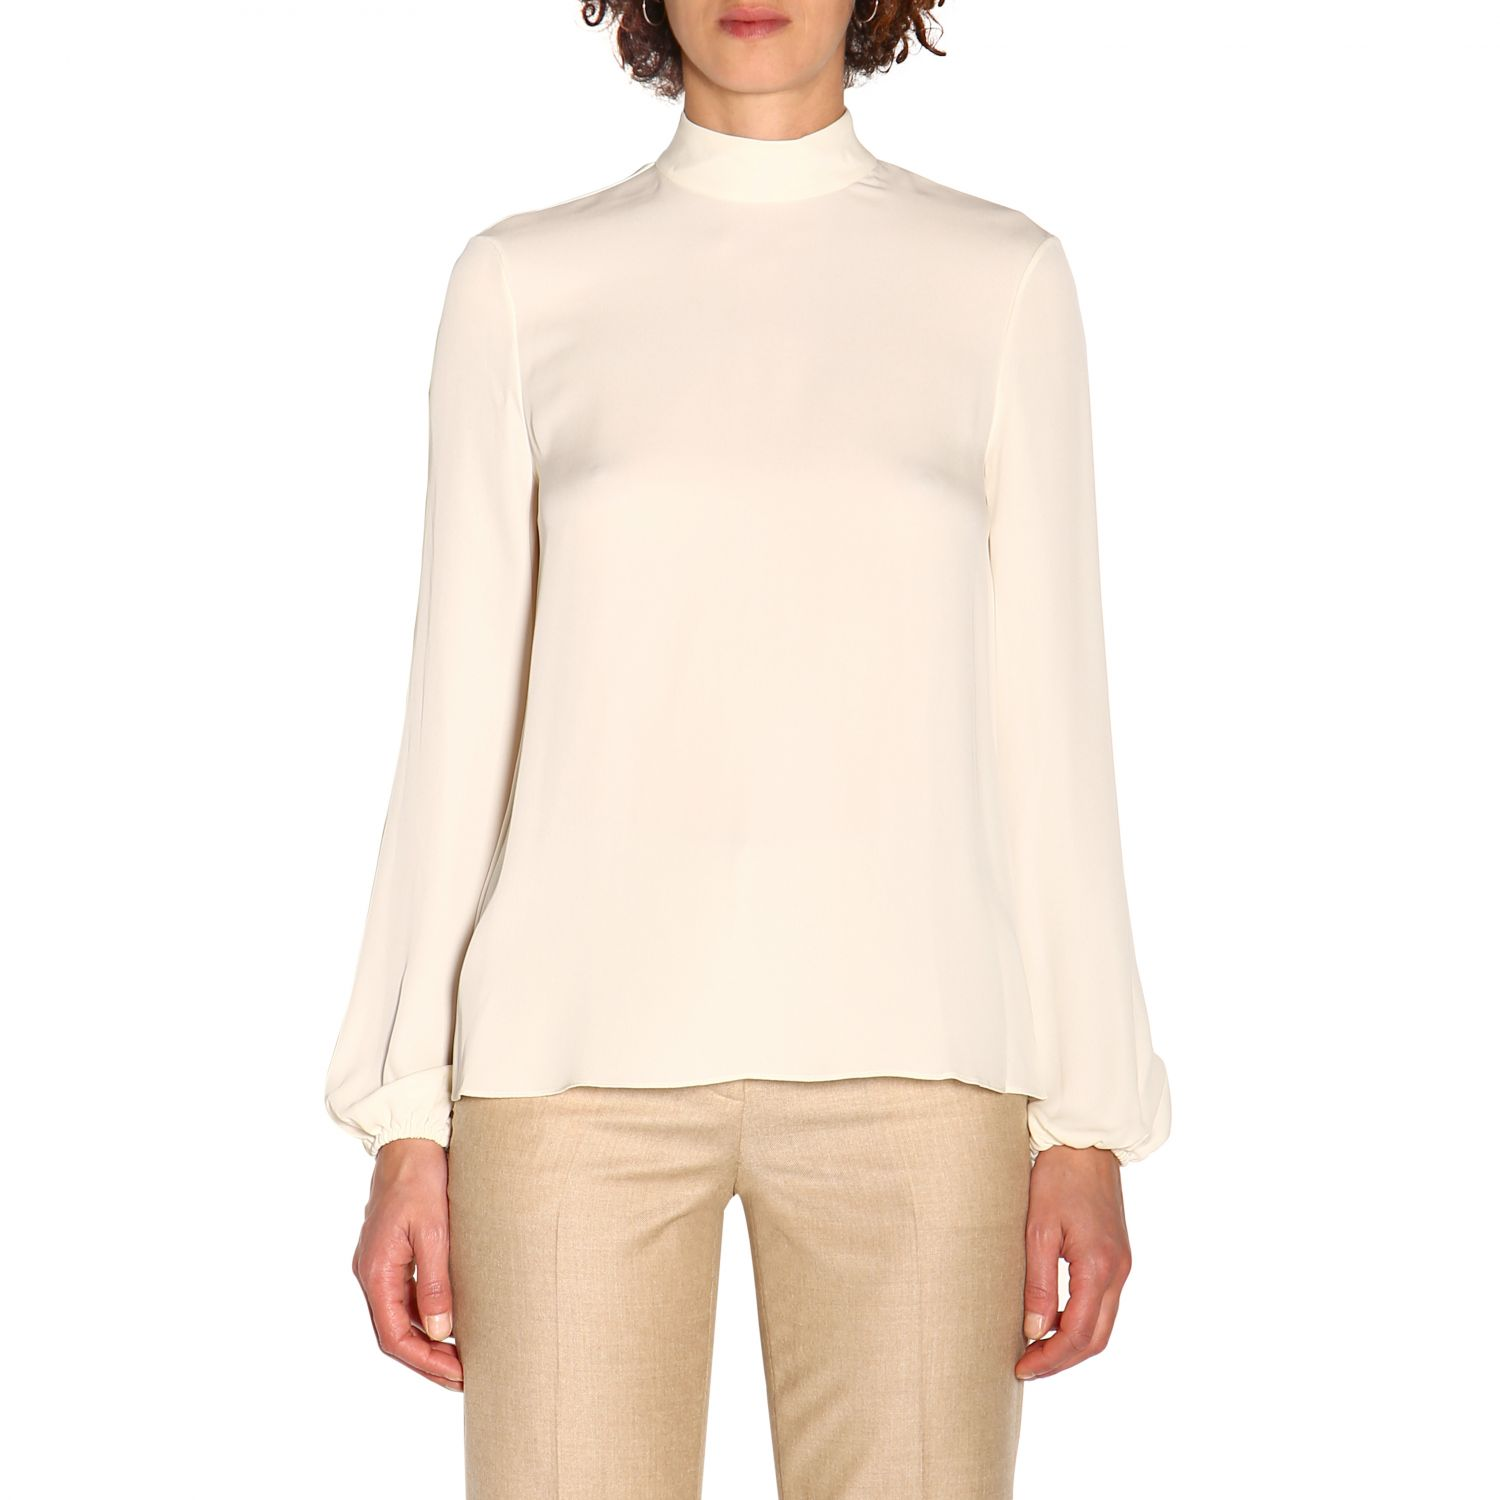 T-shirt women Theory ivory 1